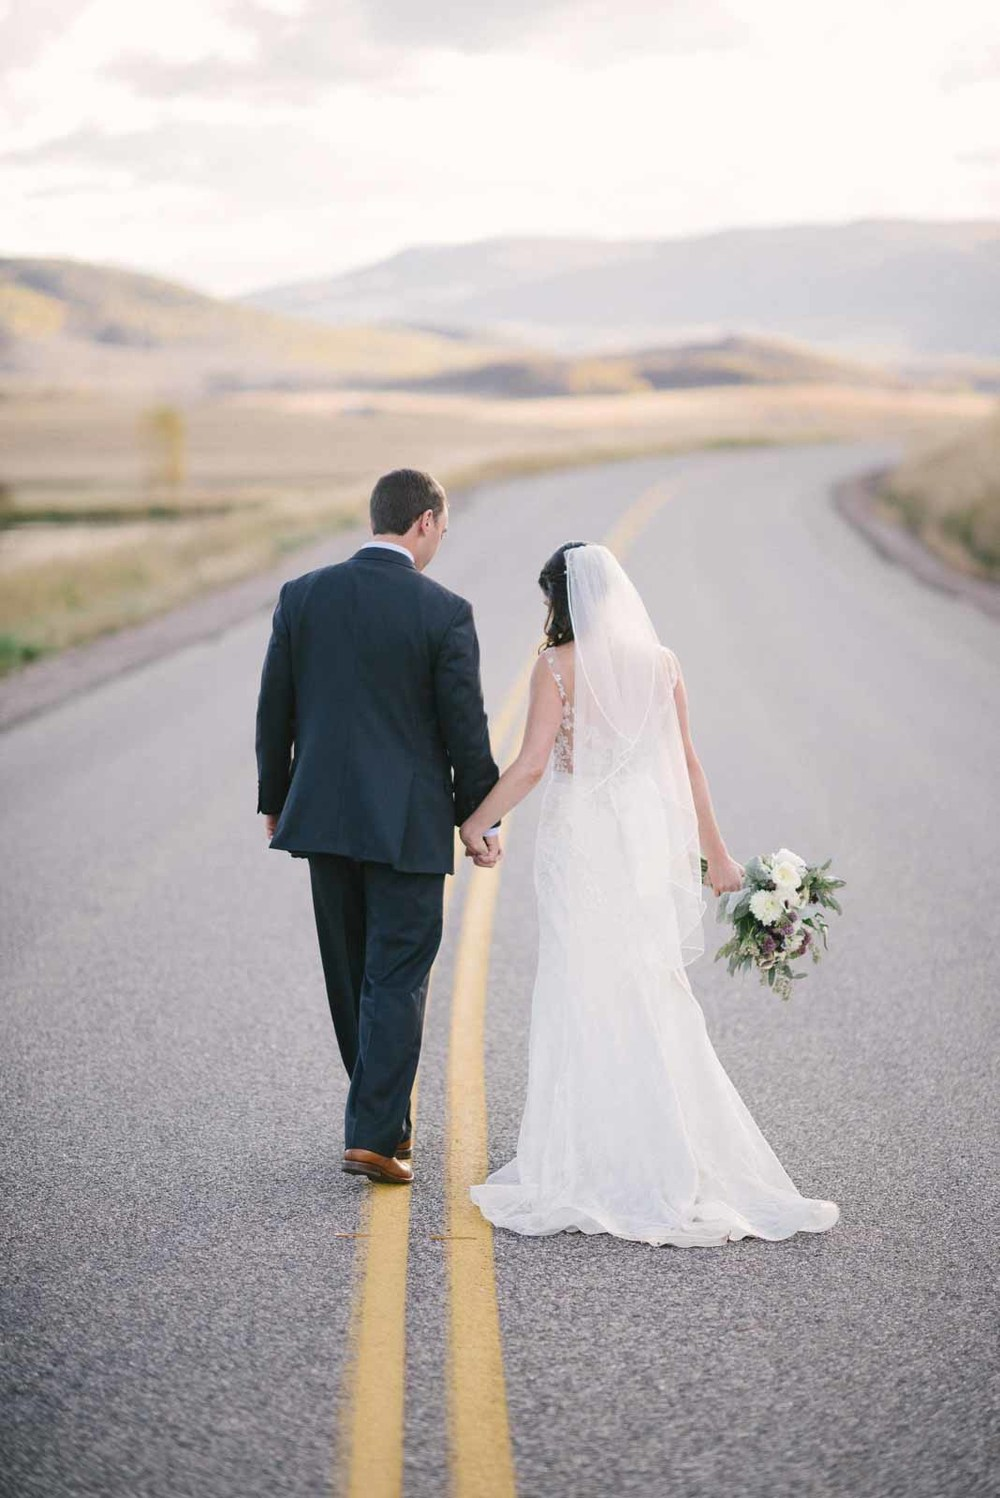 Leigh | 2015 | Steamboat Springs, Colorado |  Andy Barnhart Photography